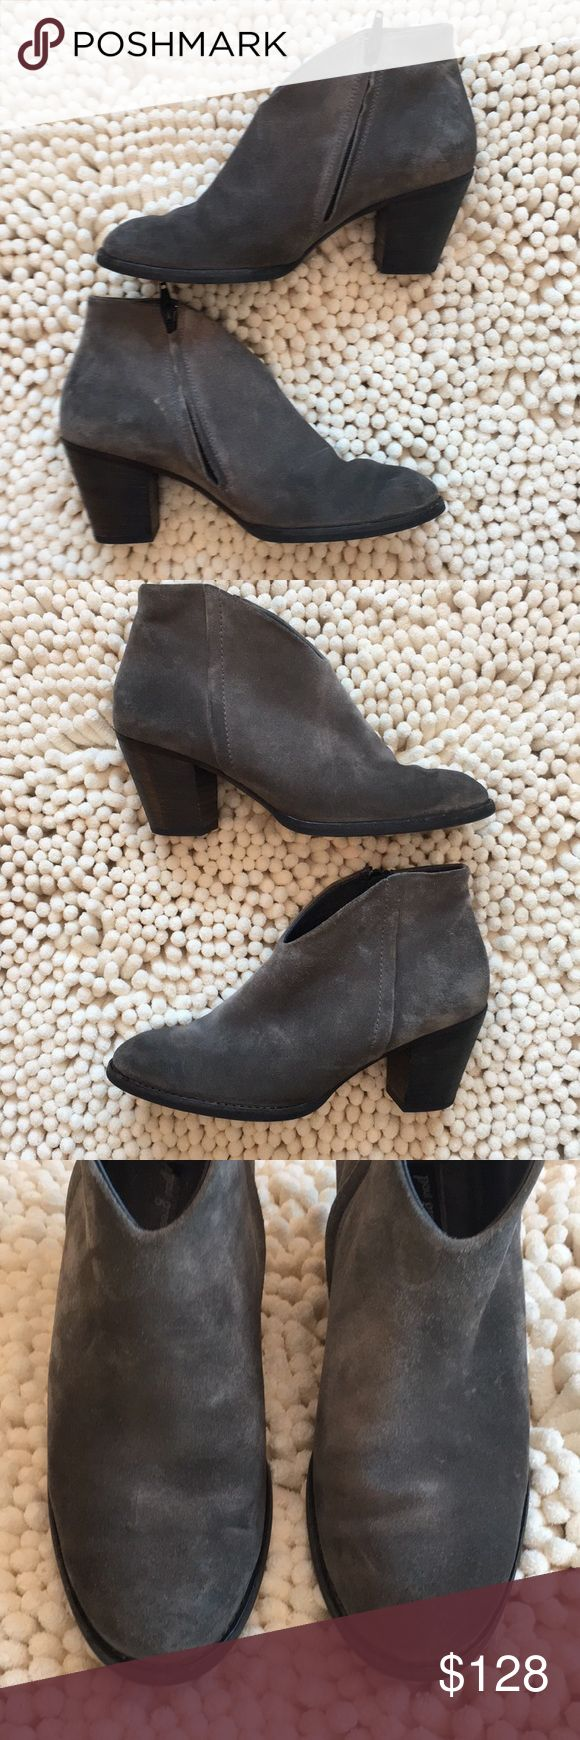 Paul Green Gray Leather Suede Bootie Great preloved condition size 8.5 super cute zips close approximately 2 3/4 inch heel excellent quality beautiful boot no rips no tears no stains non-smoking environment 💕 Paul Green Shoes Ankle Boots & Booties